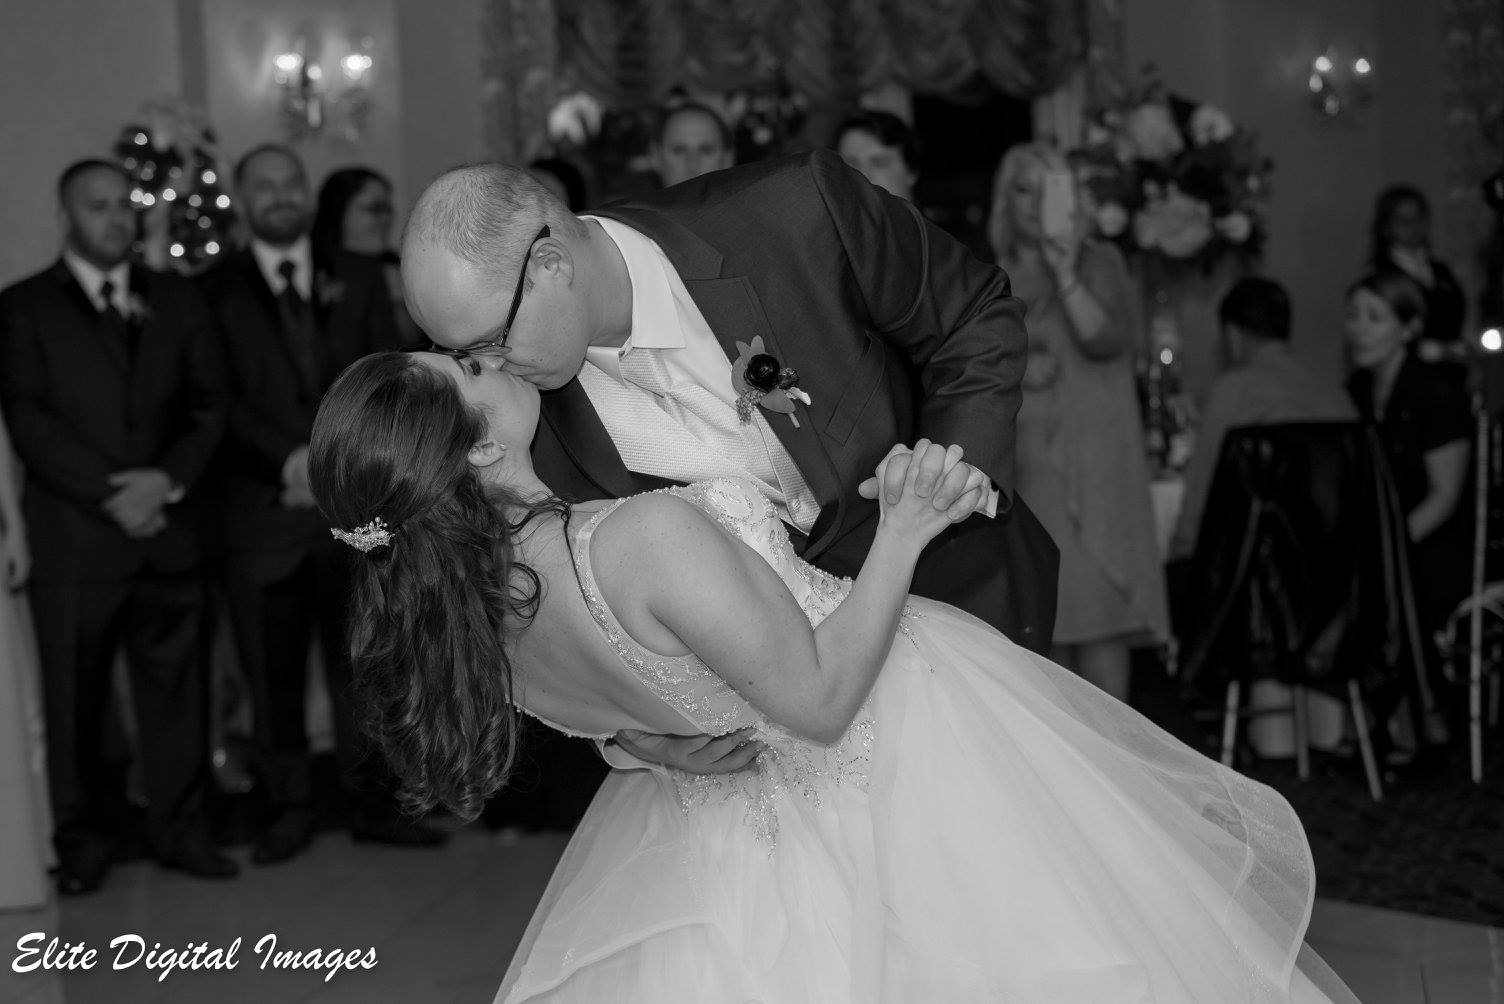 Elite Entertainment_ NJWedding_ EliteDigitalImages_EnglishManor_NicoleAndCraig5